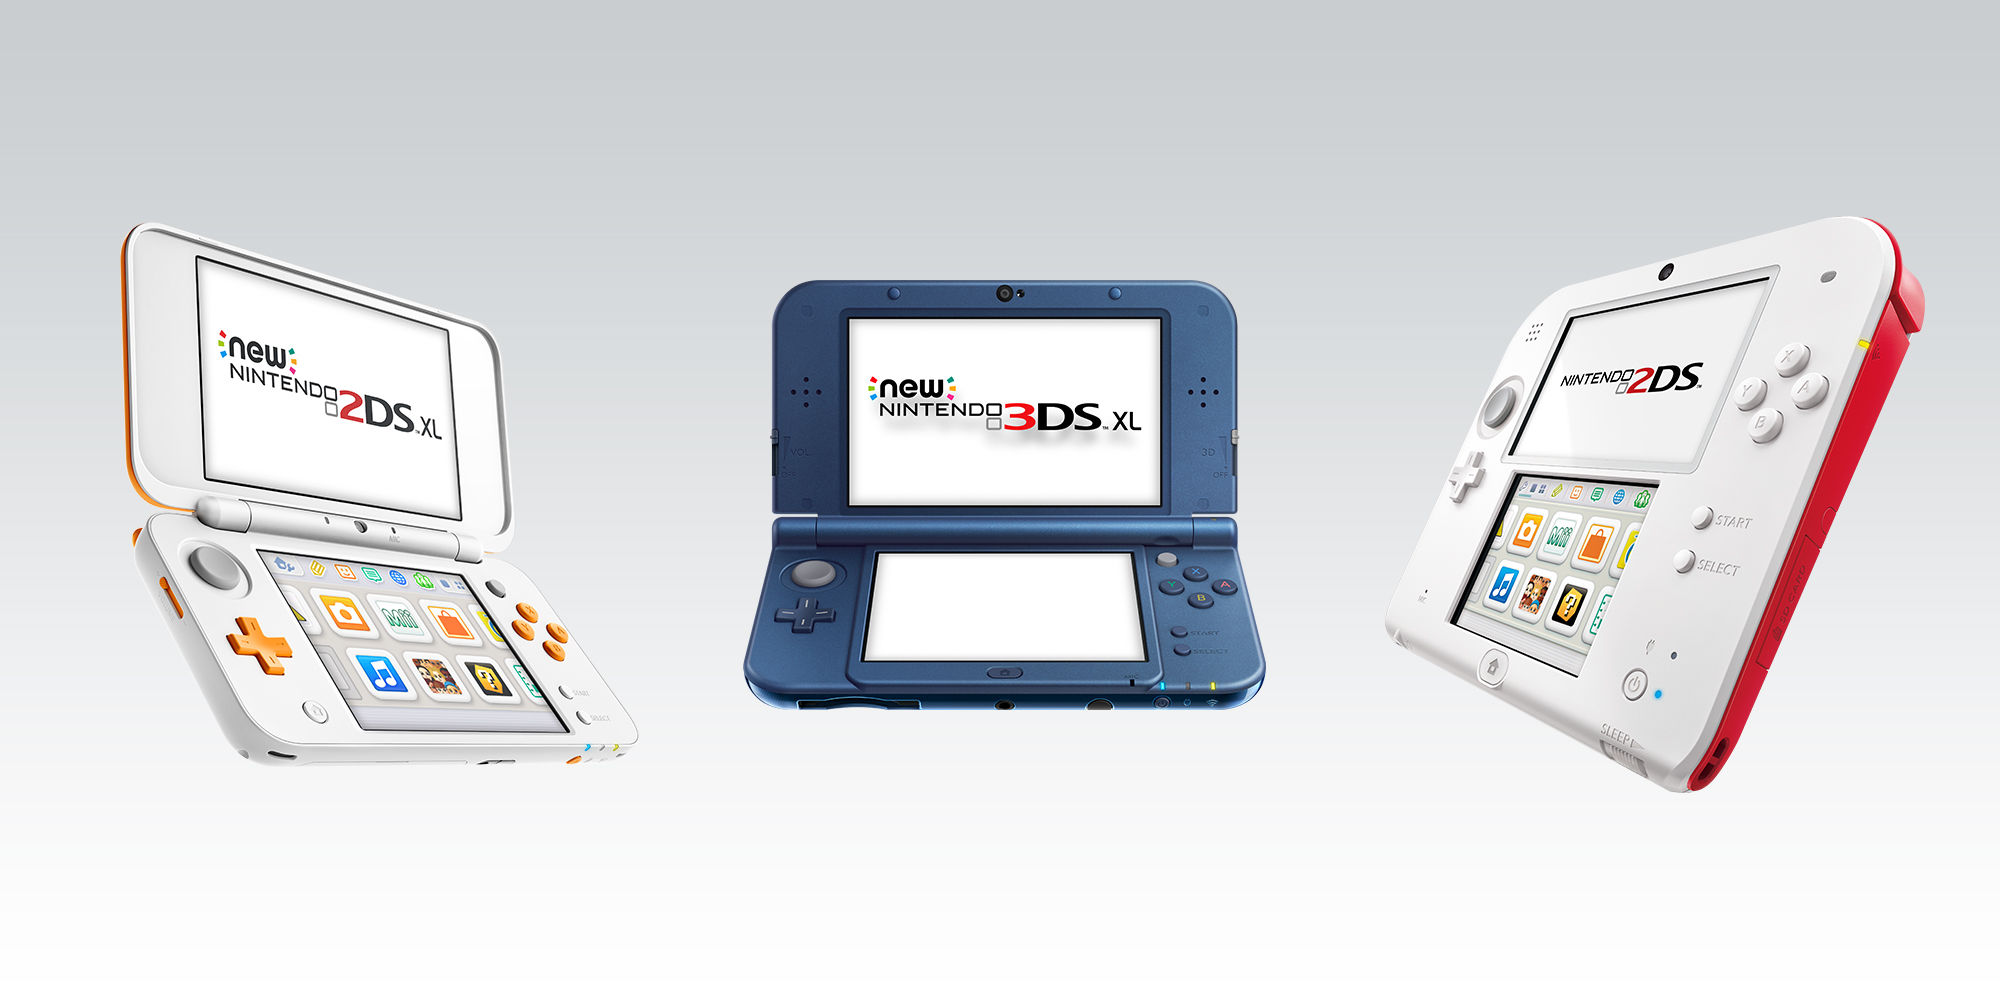 Nintendo 3DS/2DS Sales